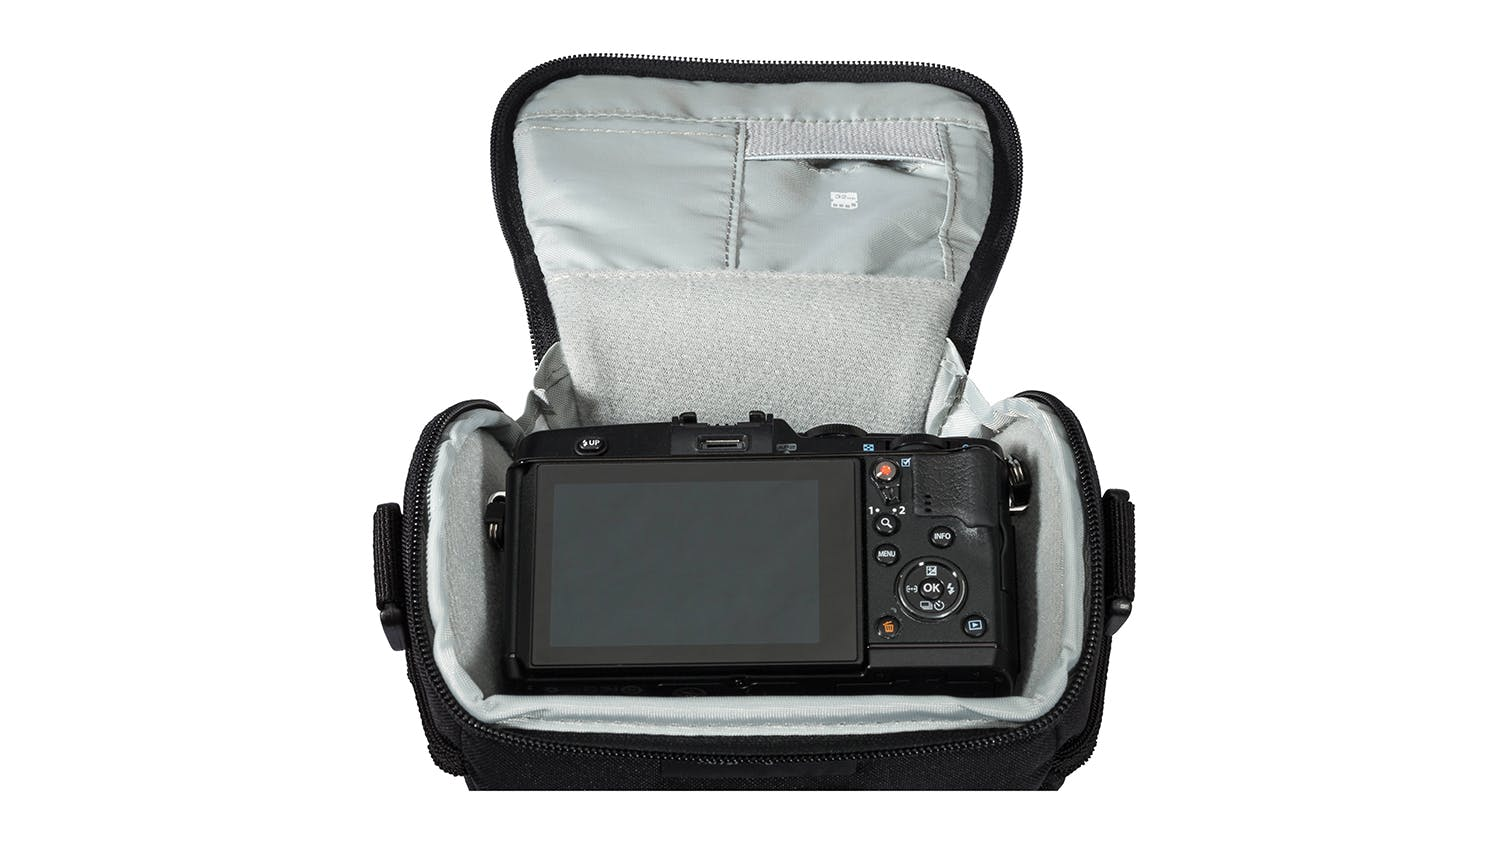 Lowepro Adventura TLZ 20 II Camera Bag